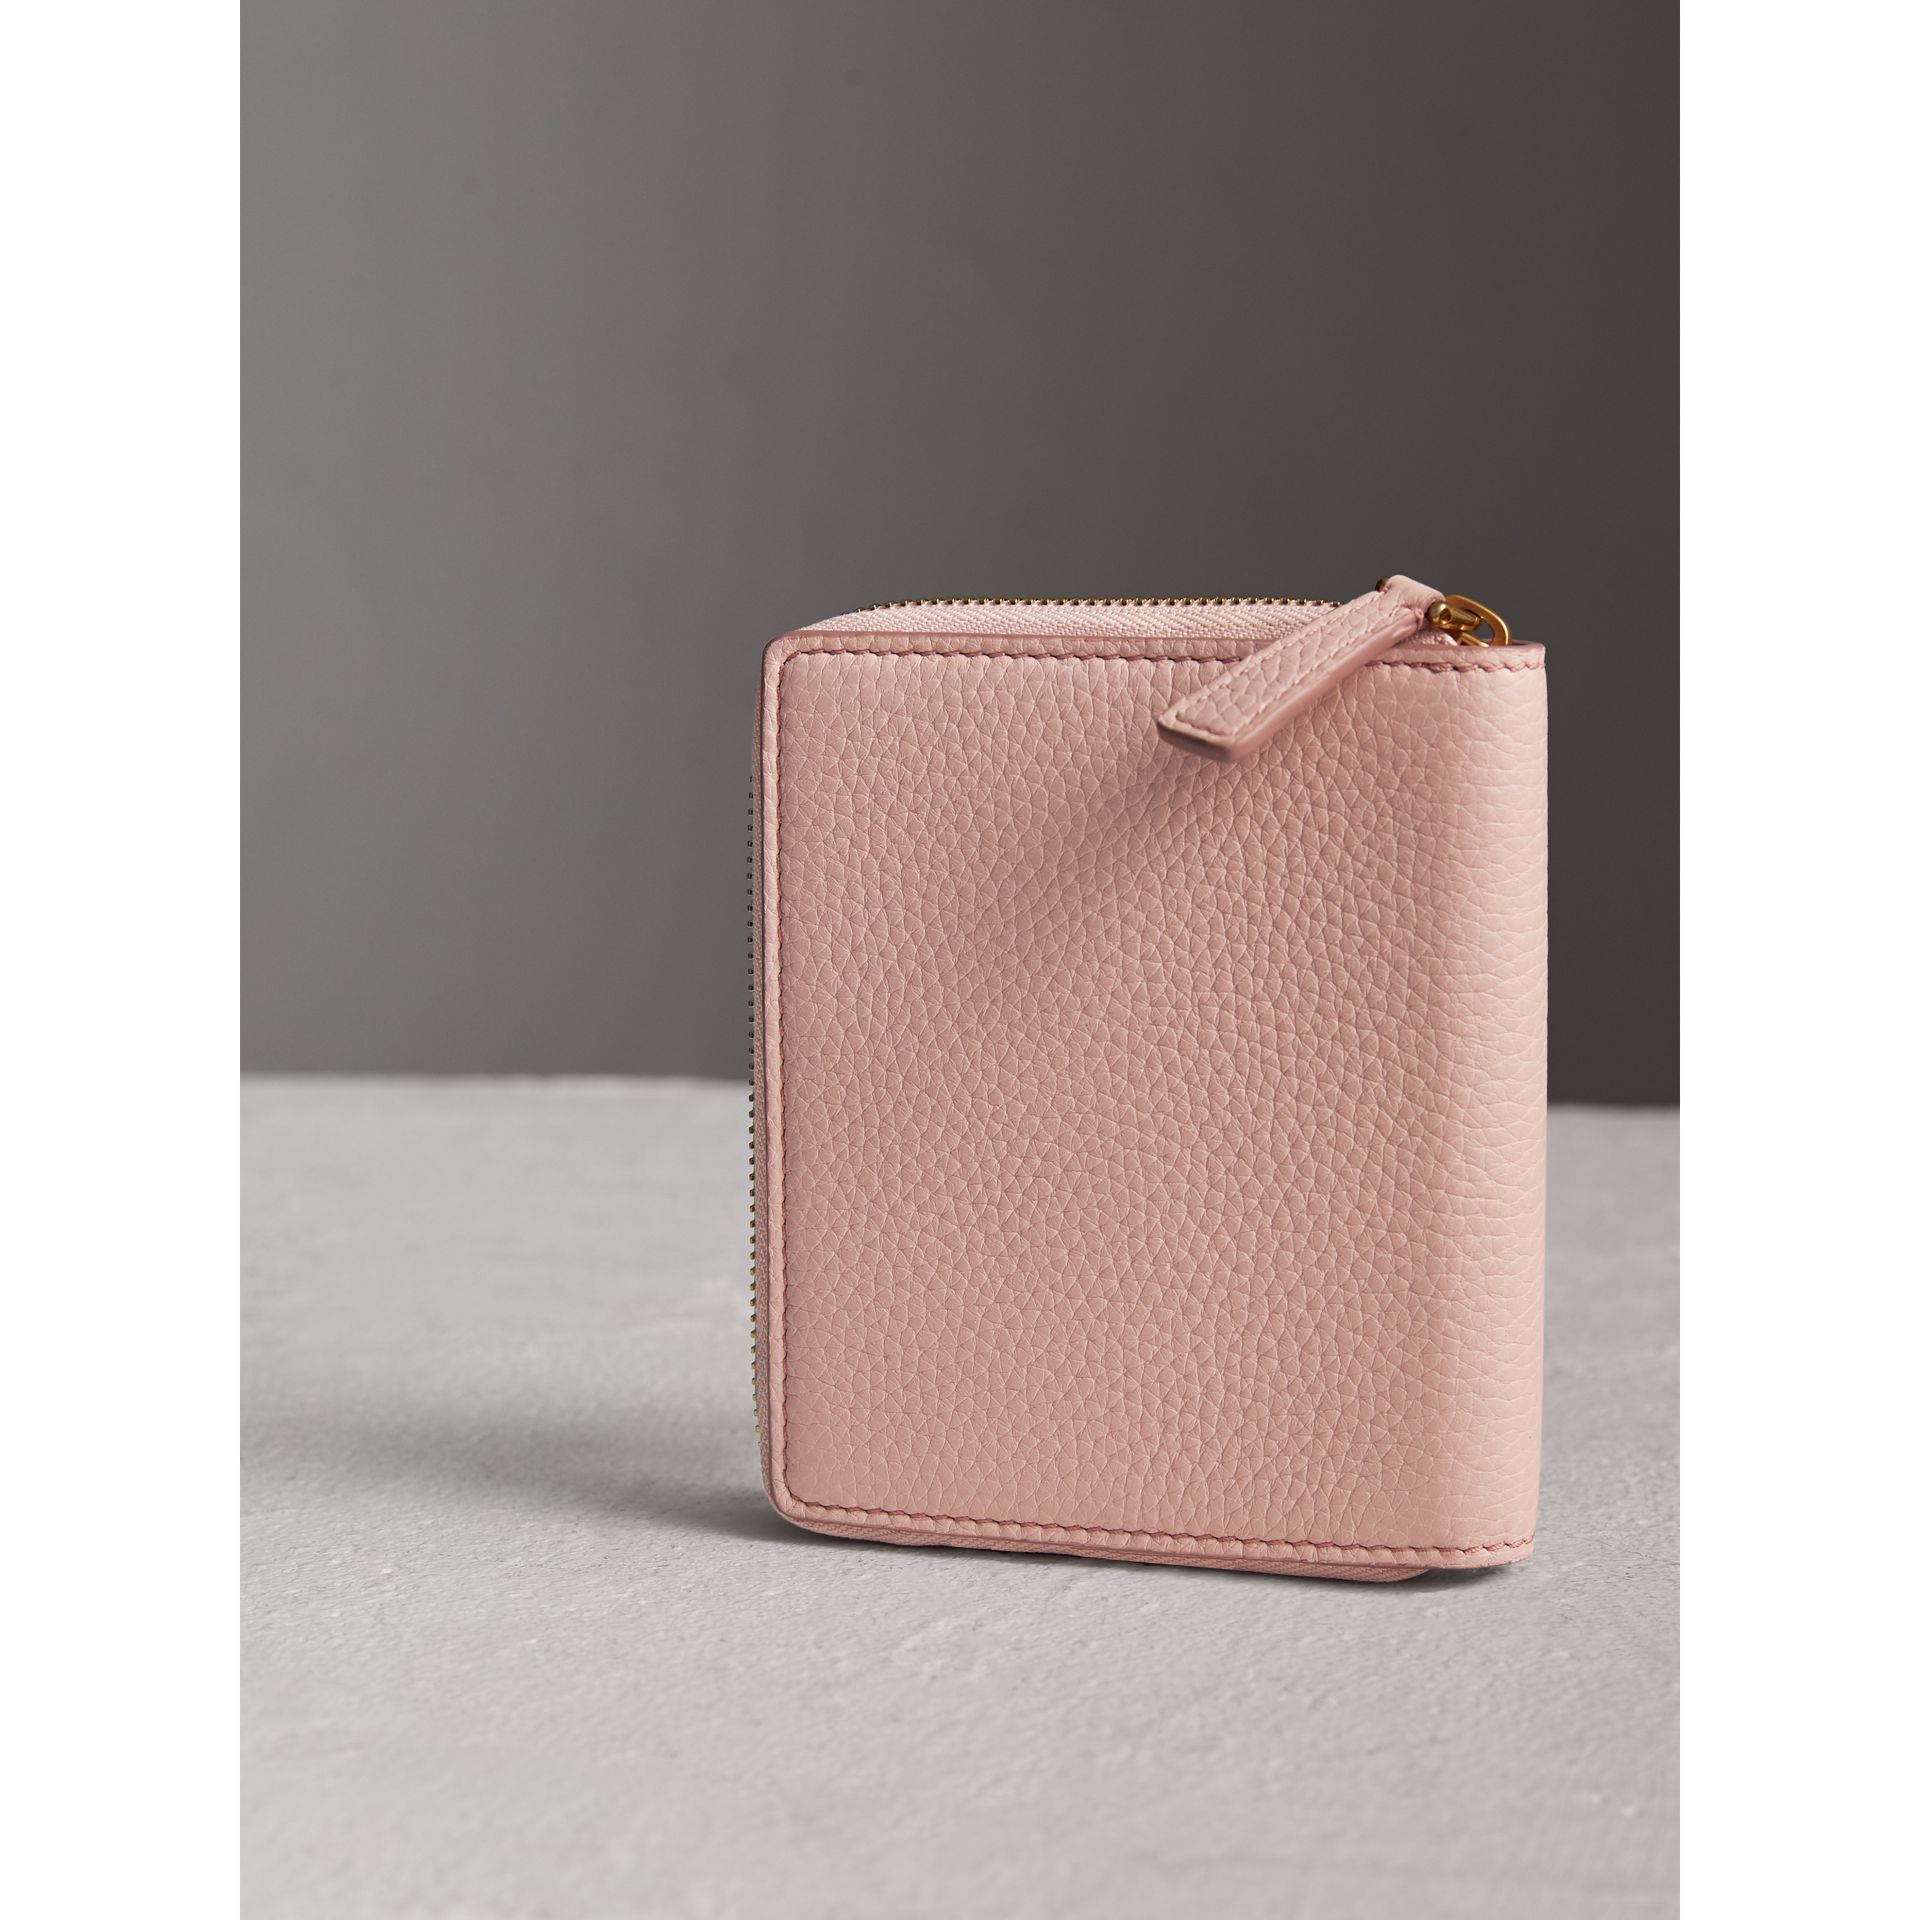 Embossed Grainy Leather Ziparound A6 Notebook Case in Pale Ash Rose | Burberry Singapore - gallery image 2